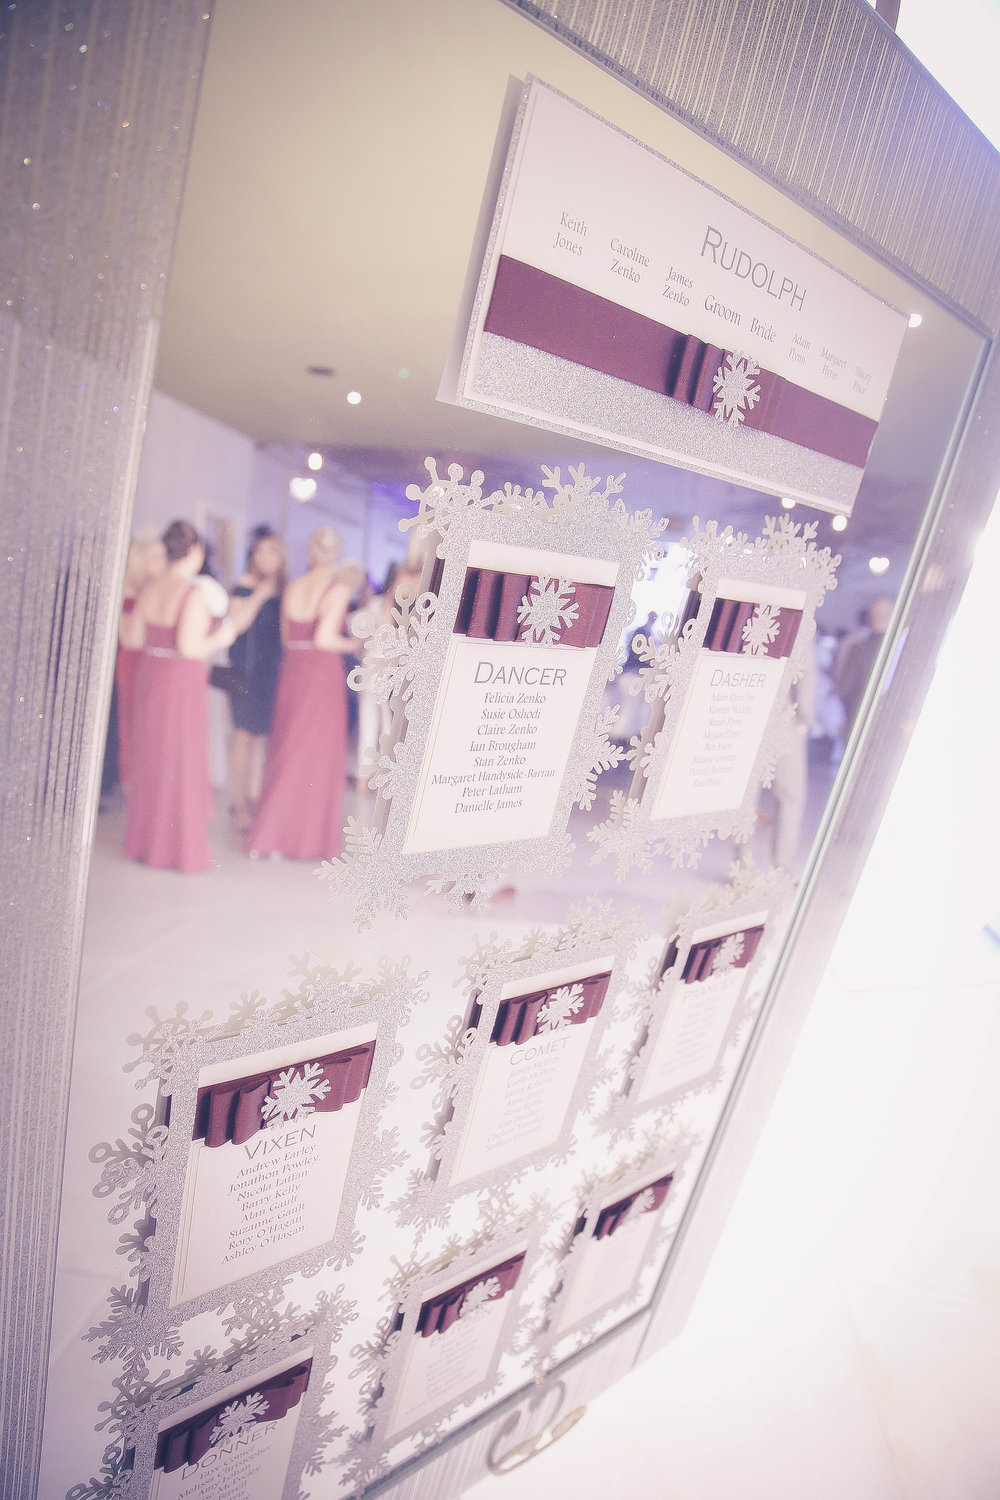 Weddings at the shankly hotel liverpool-104.jpg